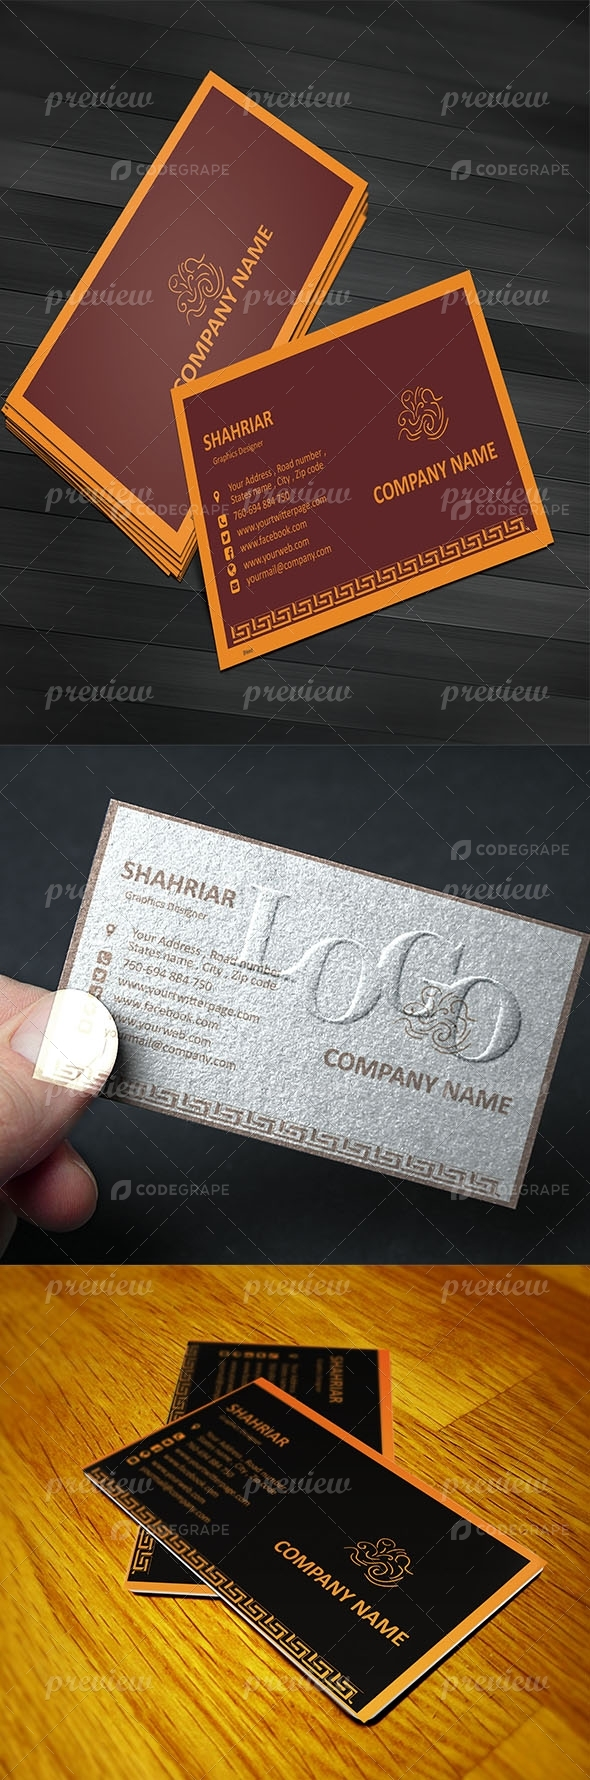 Easy Modern Business Card